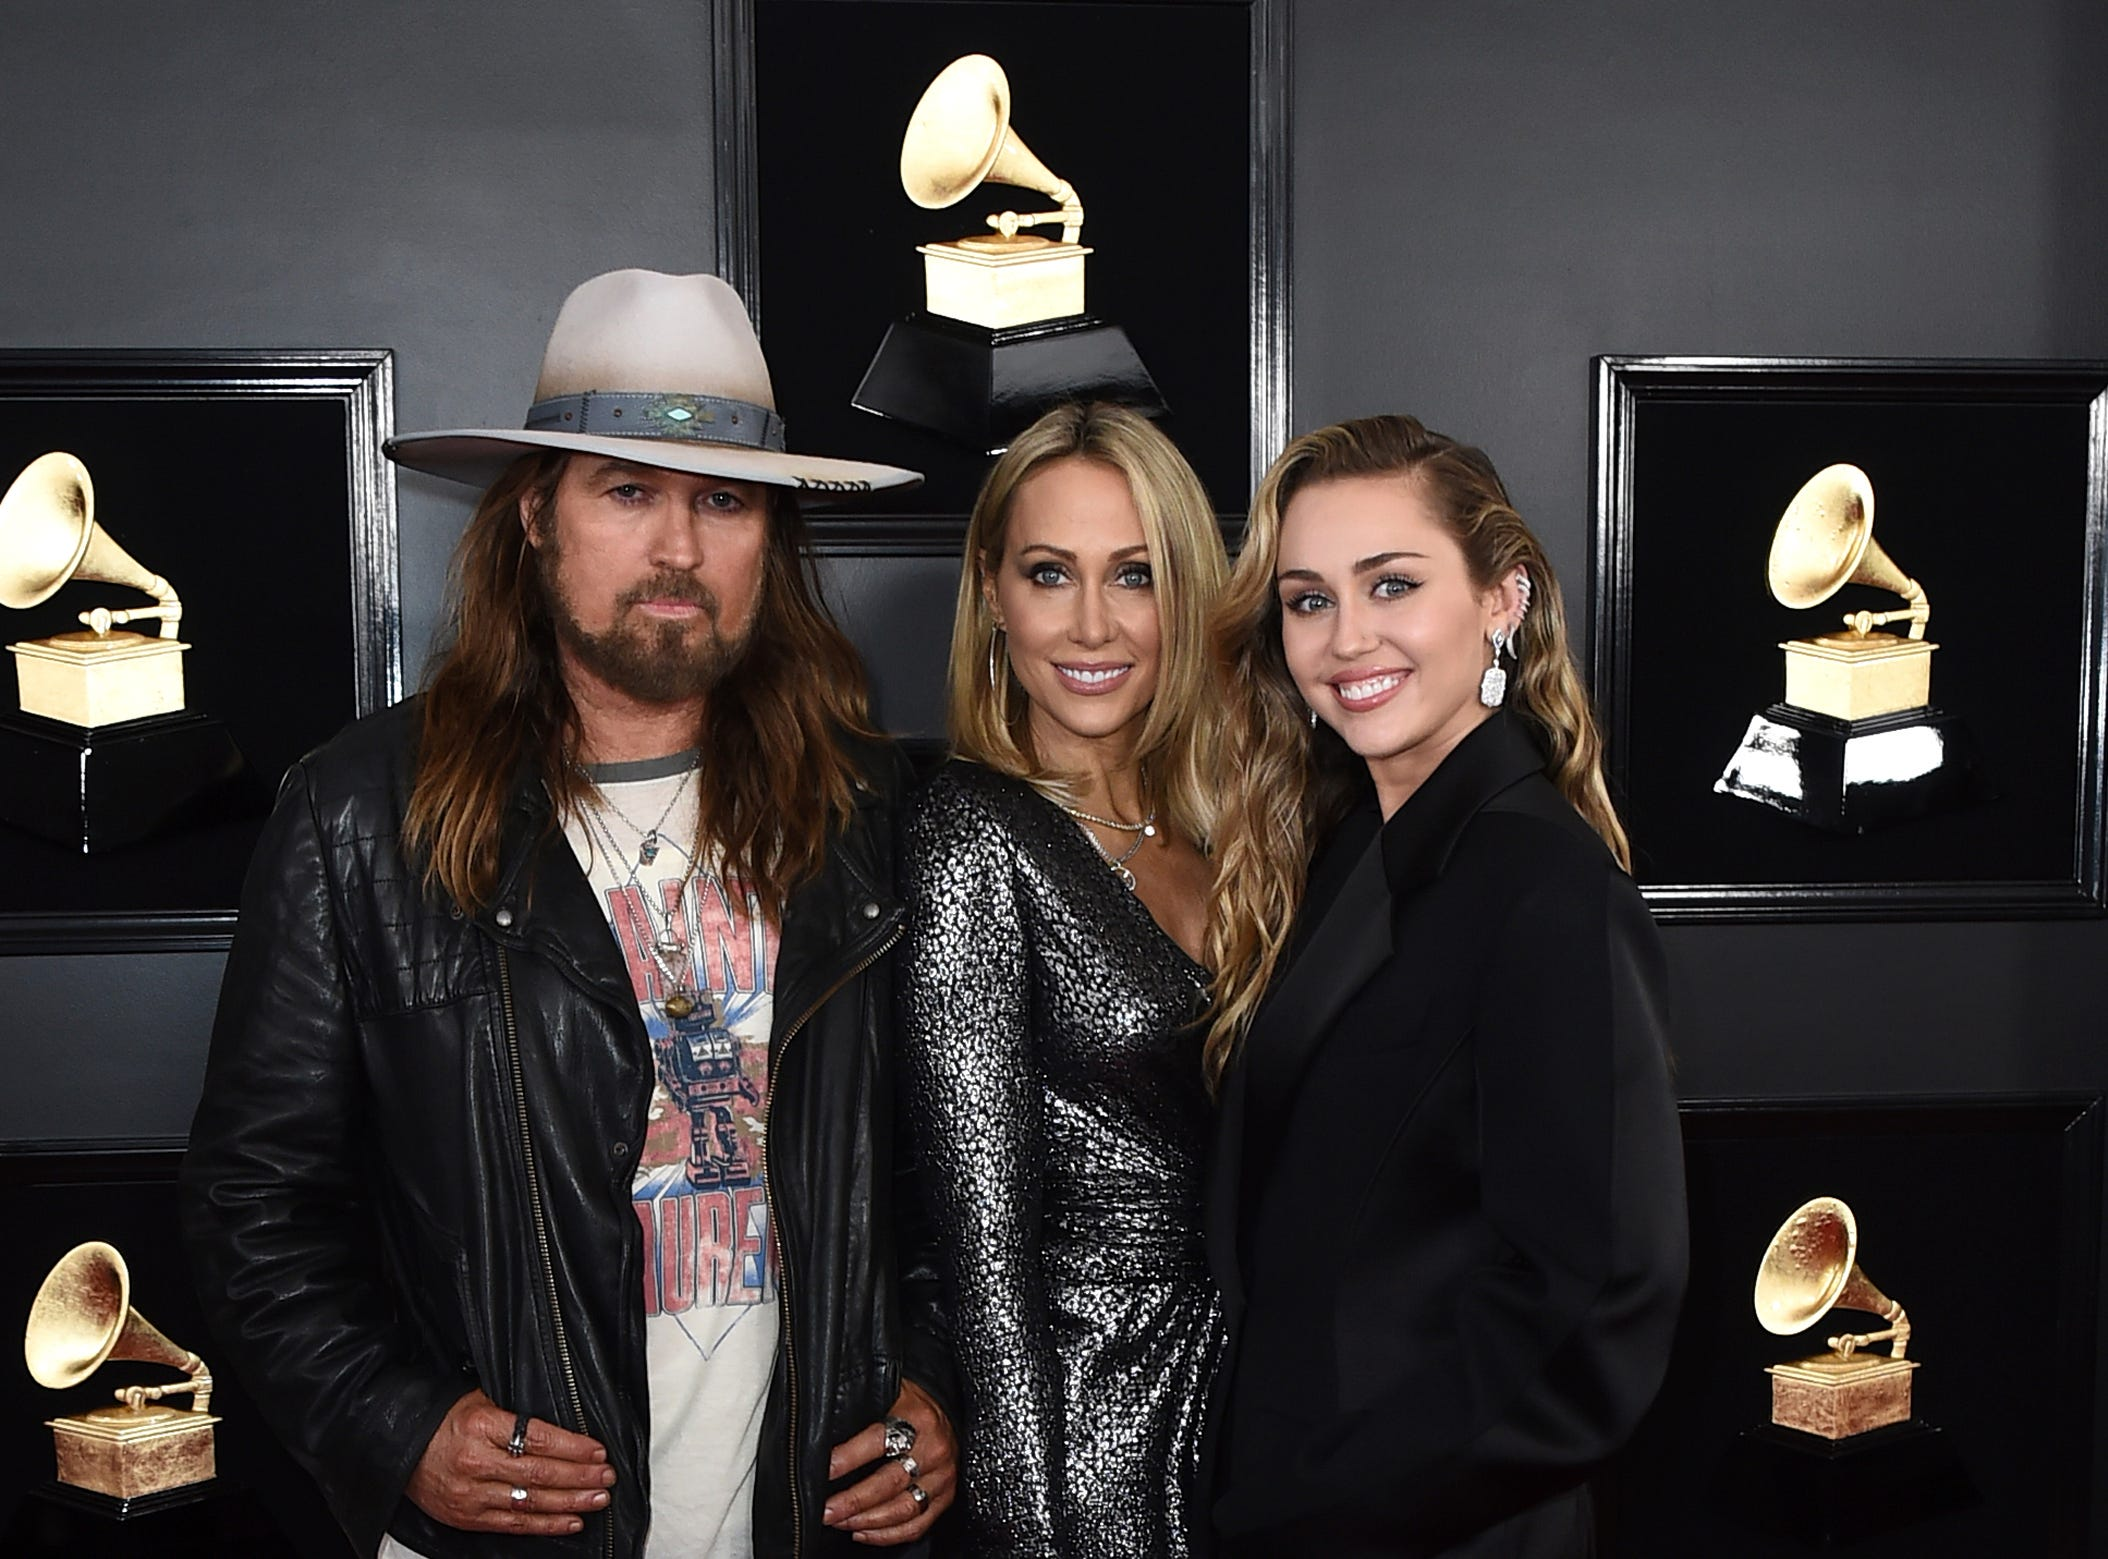 Billy Ray Cyrus, from left, Tish Cyrus, and Miley Cyrus arrive at the 61st annual Grammy Awards at the Staples Center.